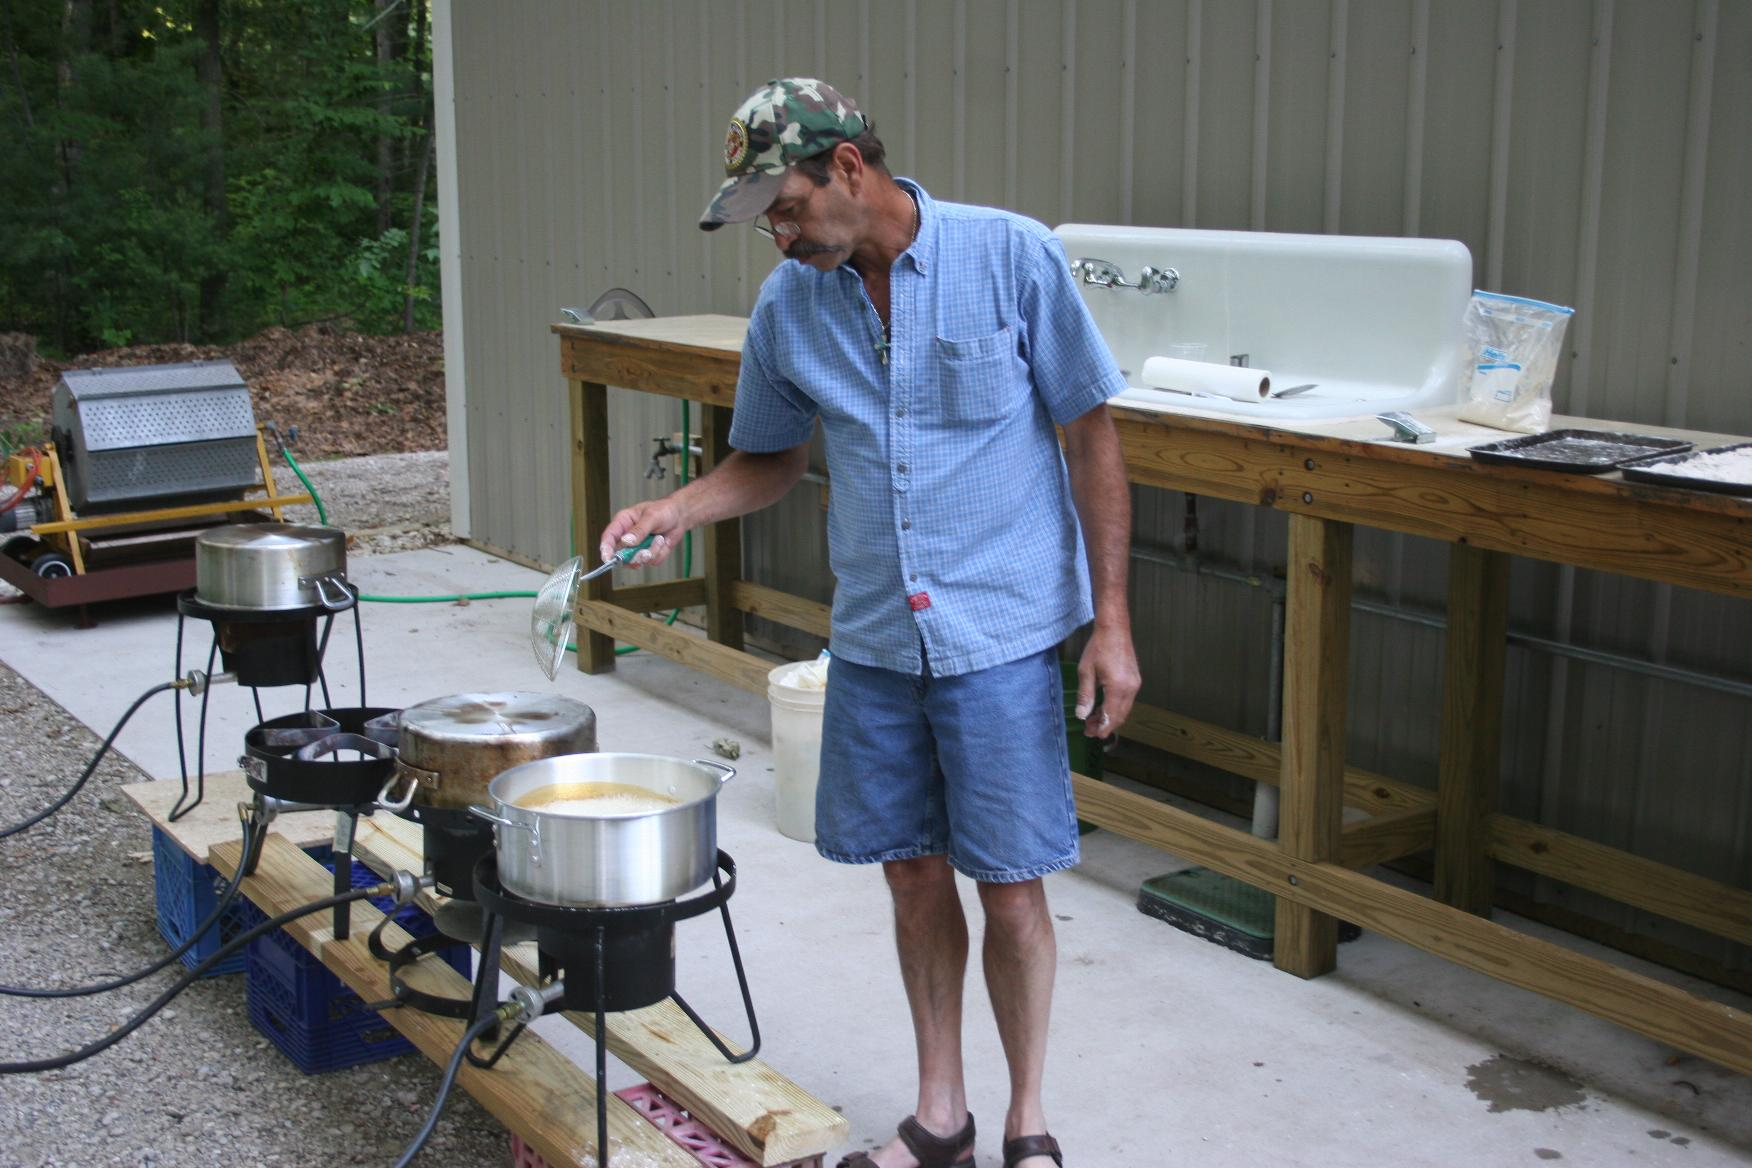 Traverse city area local fish fry for Local fish fry